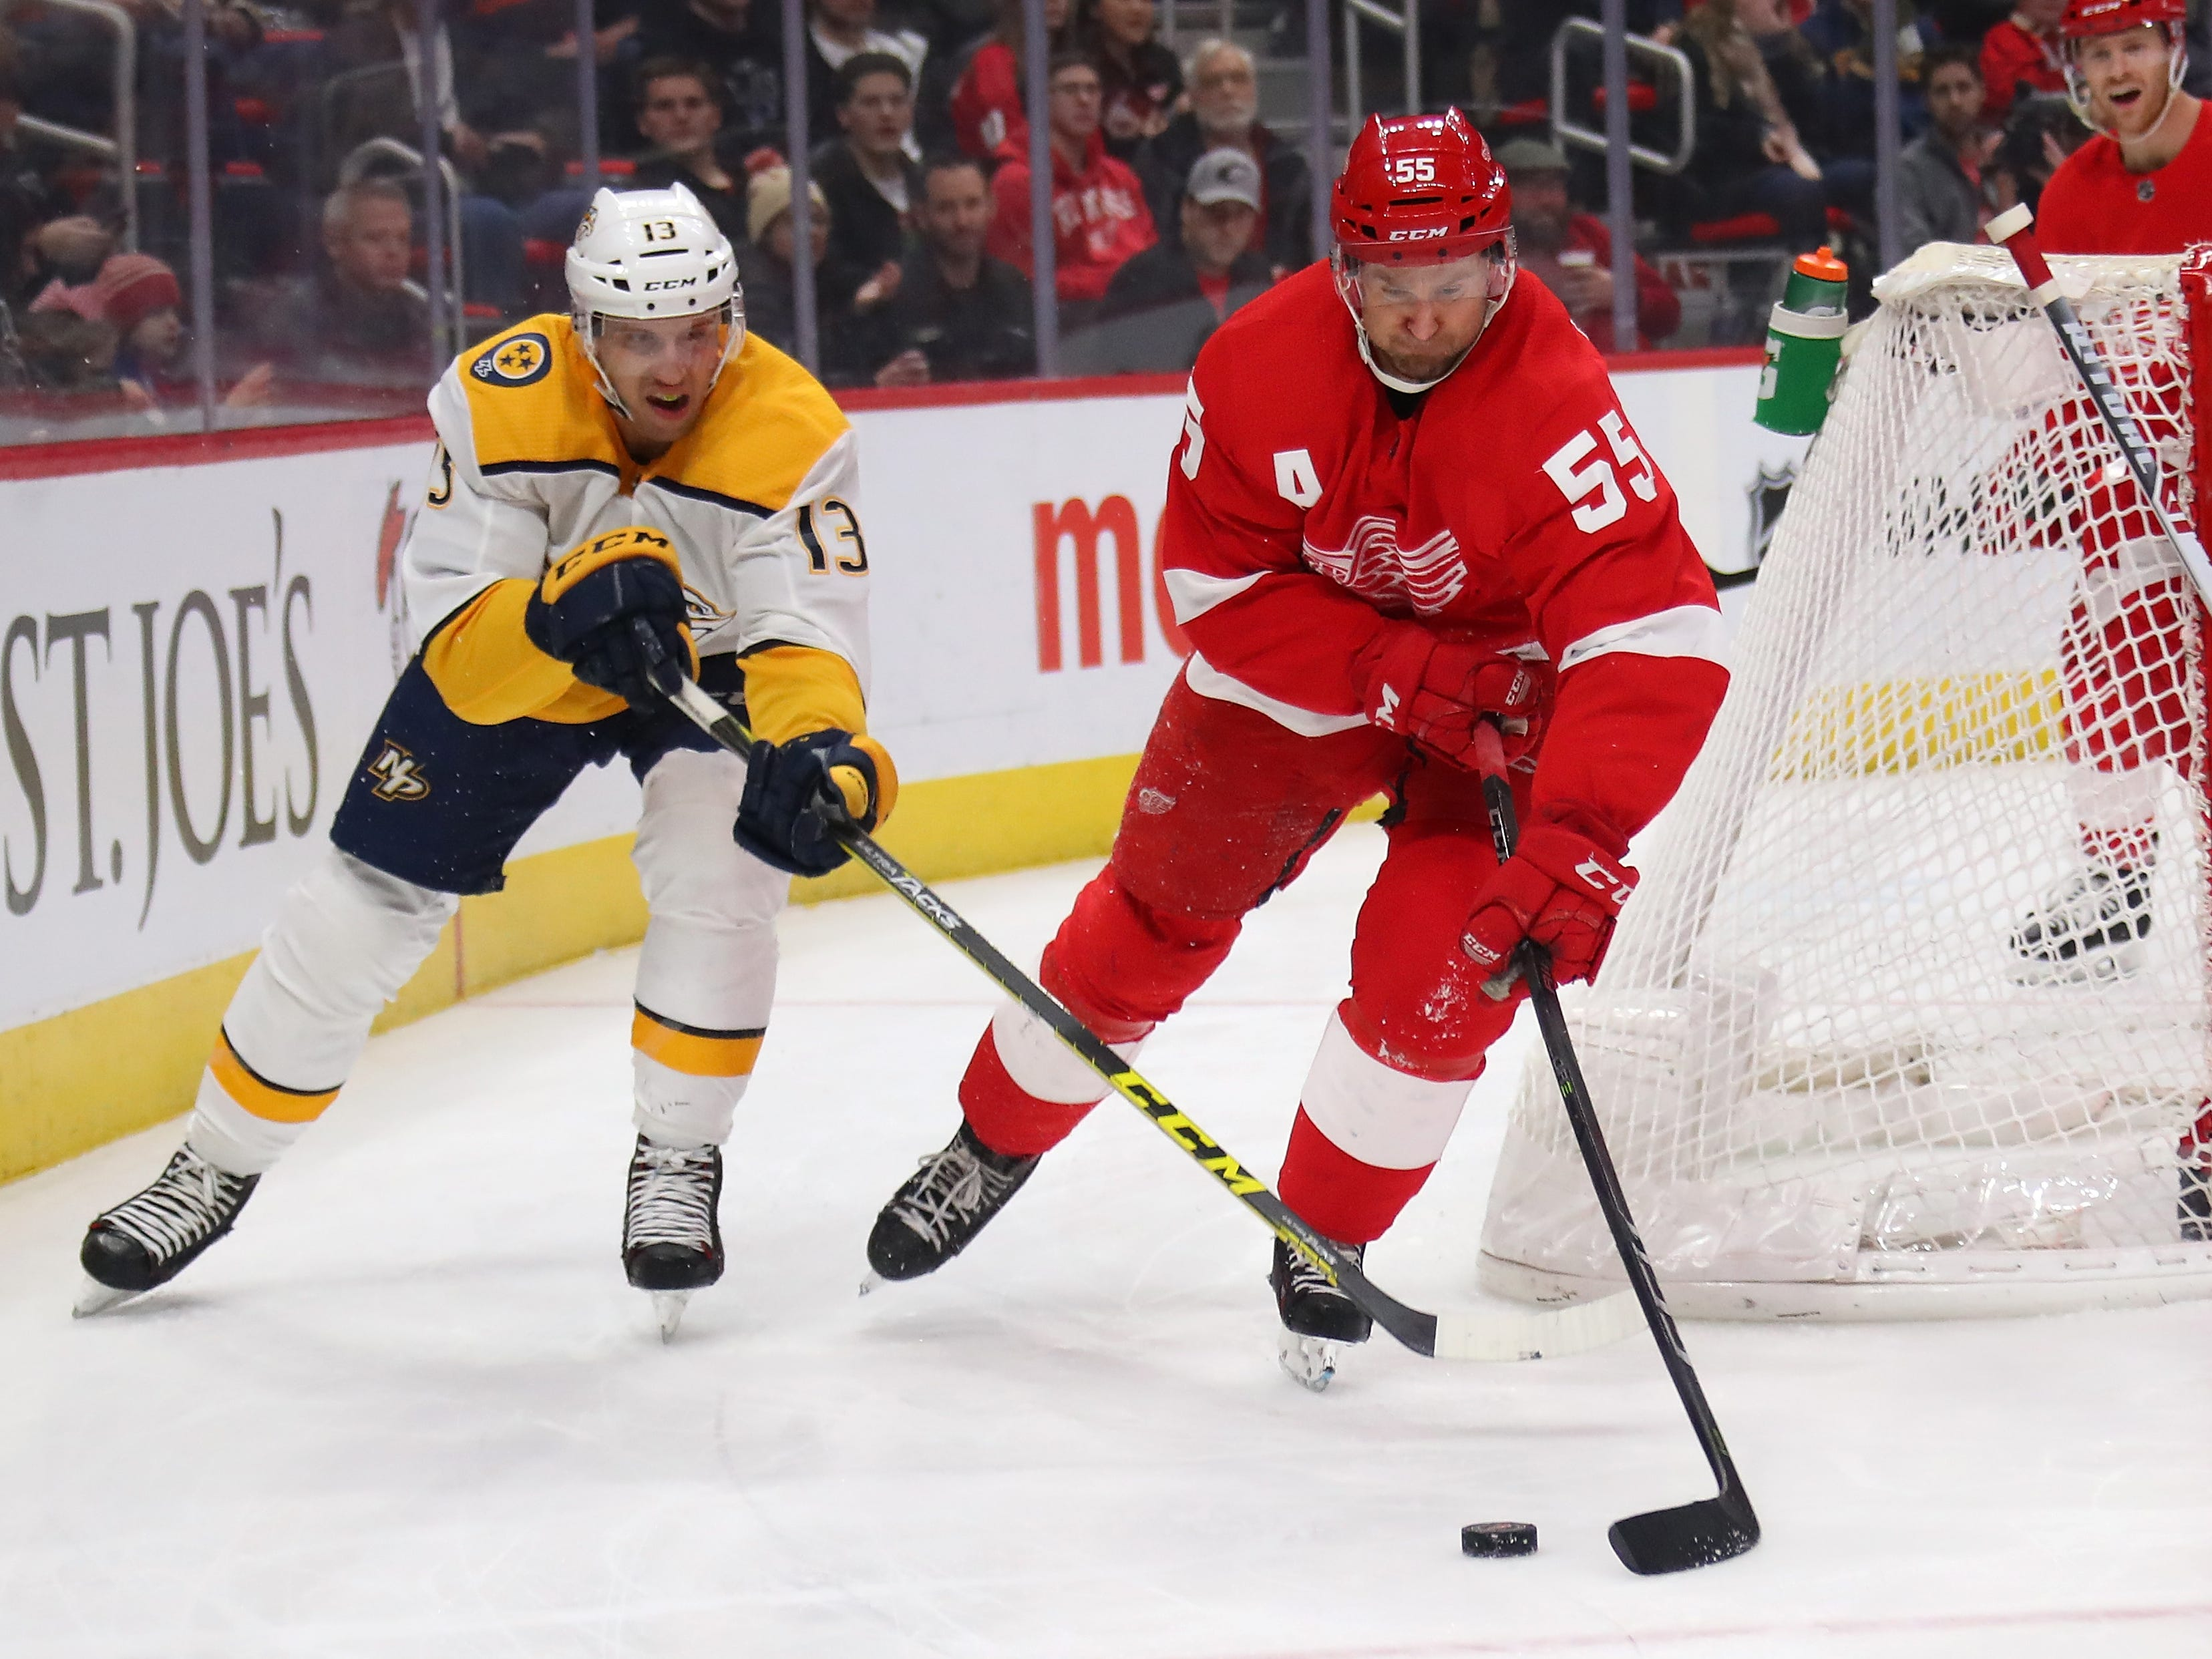 Red Wings' Niklas Kronwall (55) tries to control the puck next to Predators' Nick Bonino (13) during the first period.